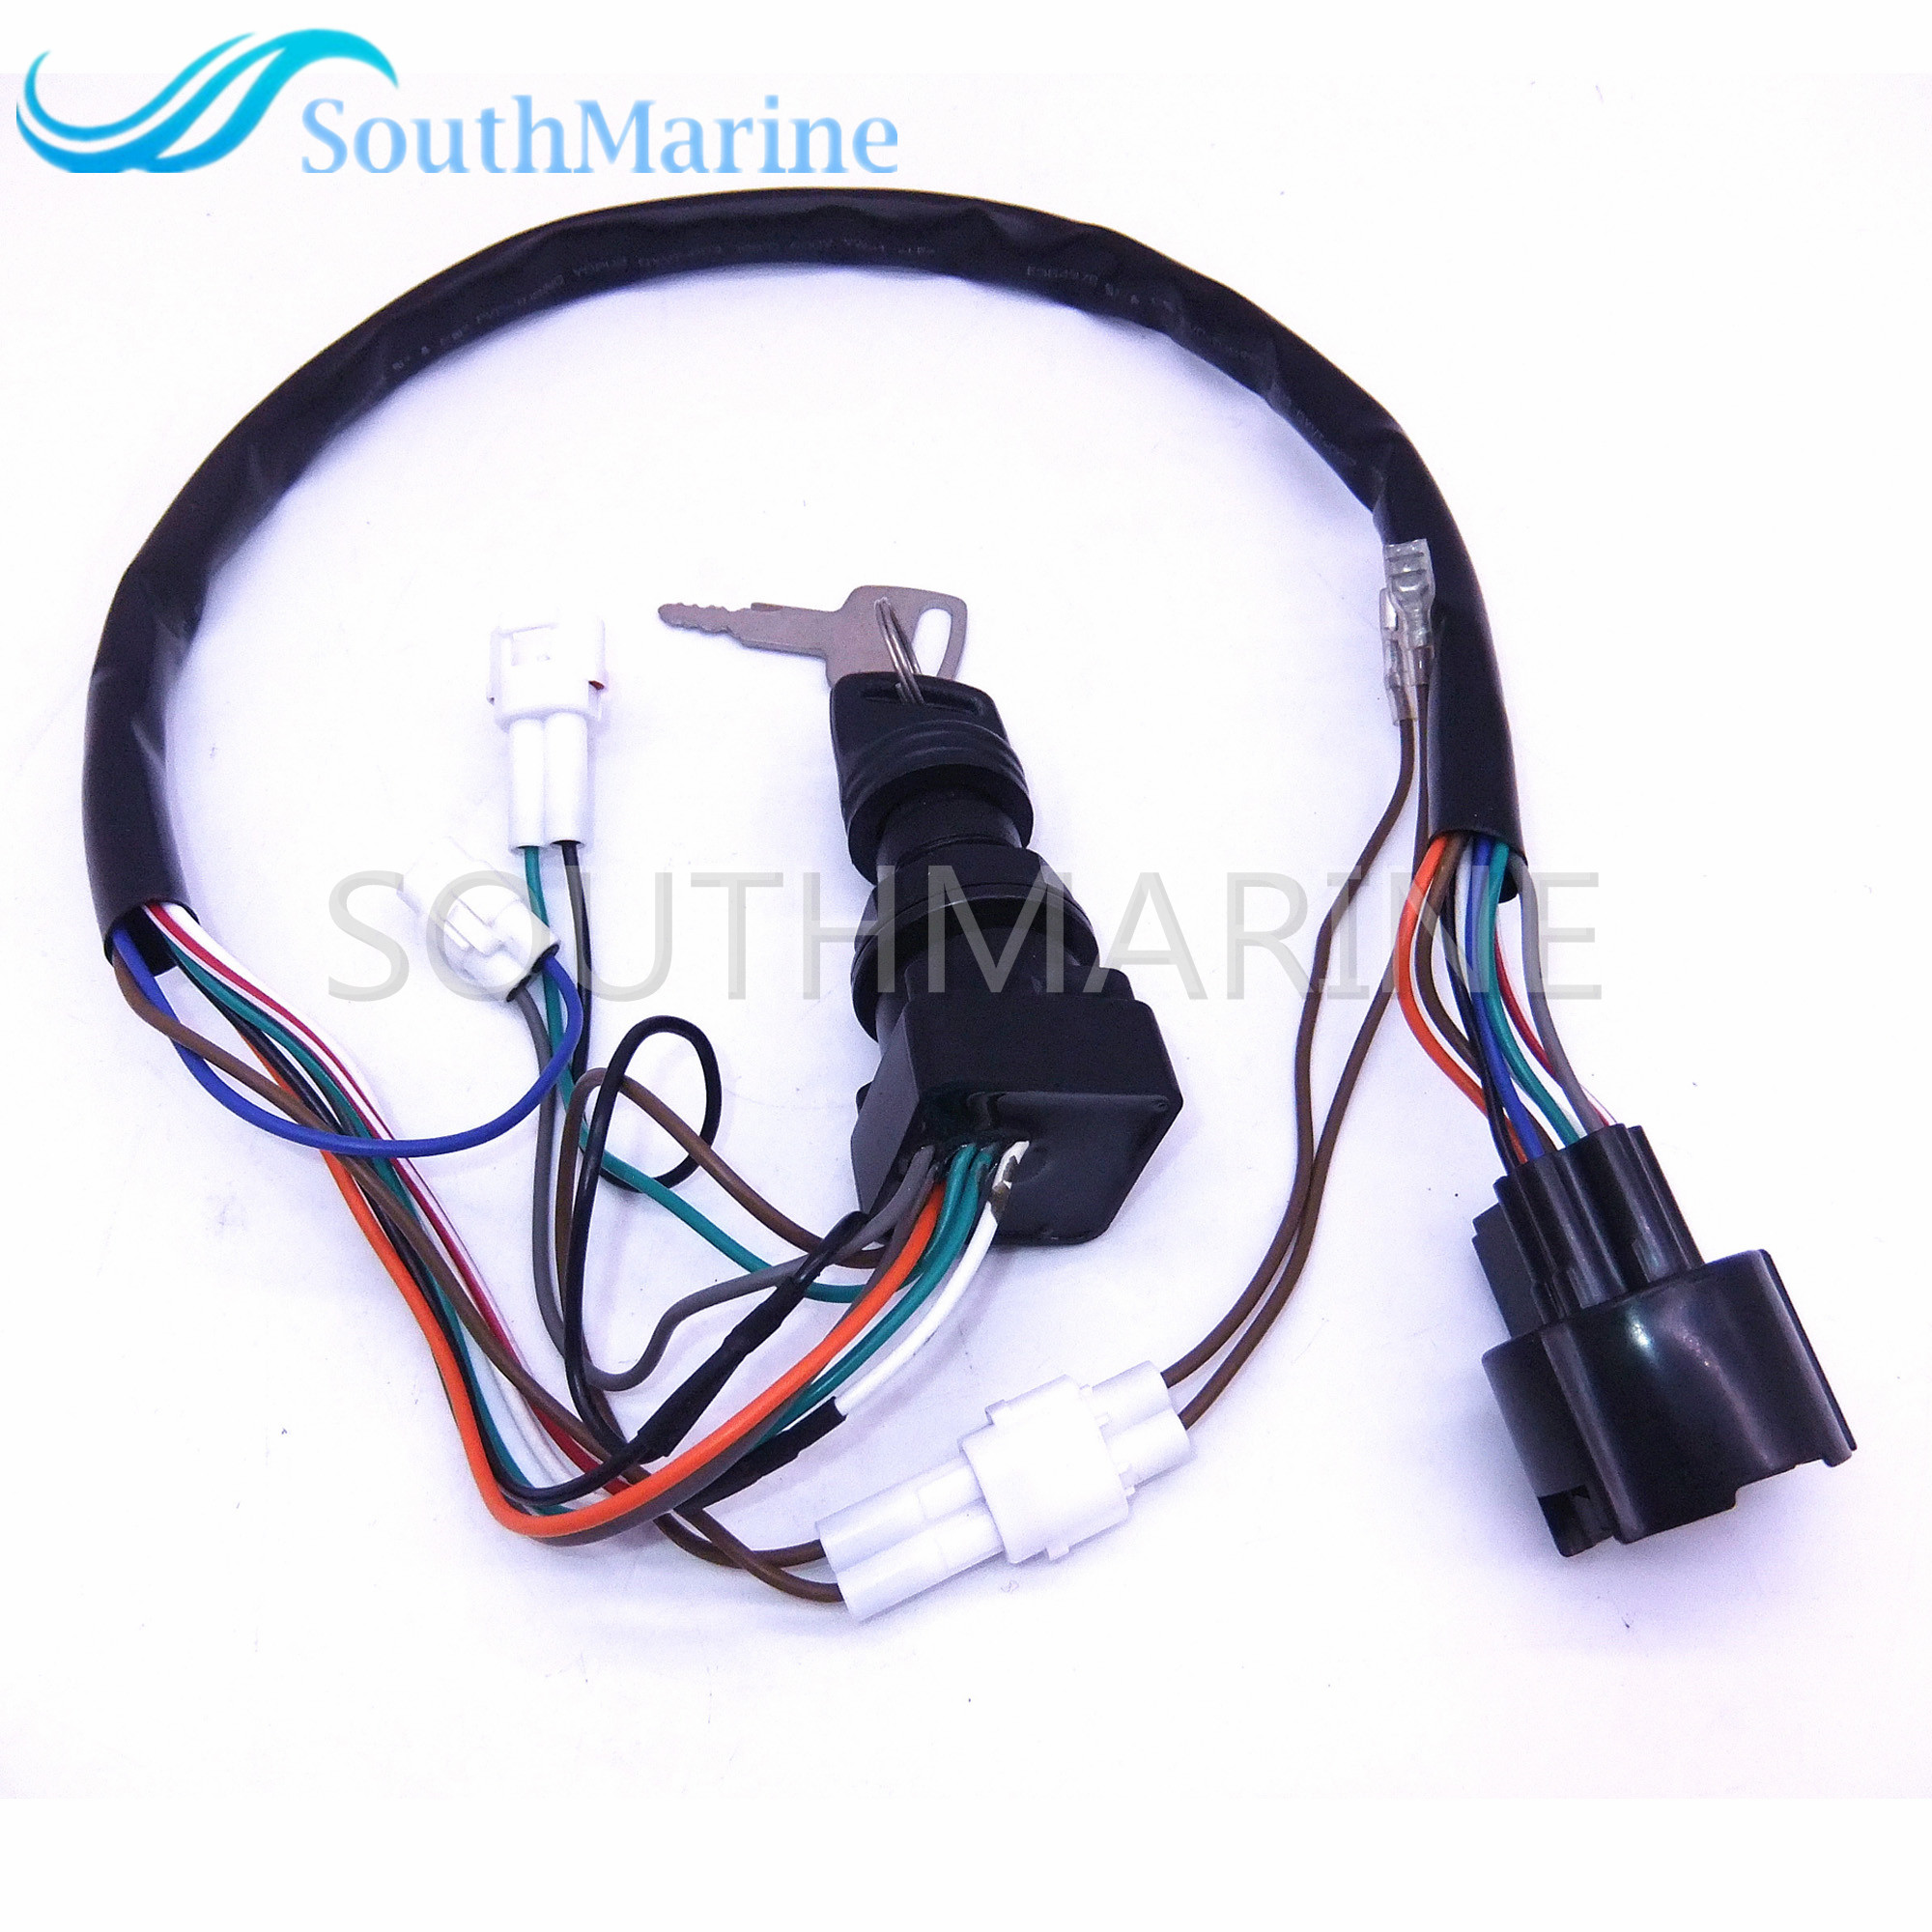 small resolution of 37110 93j00 37110 93j01 boat motor ignition switch assembly for suzuki outboard motor